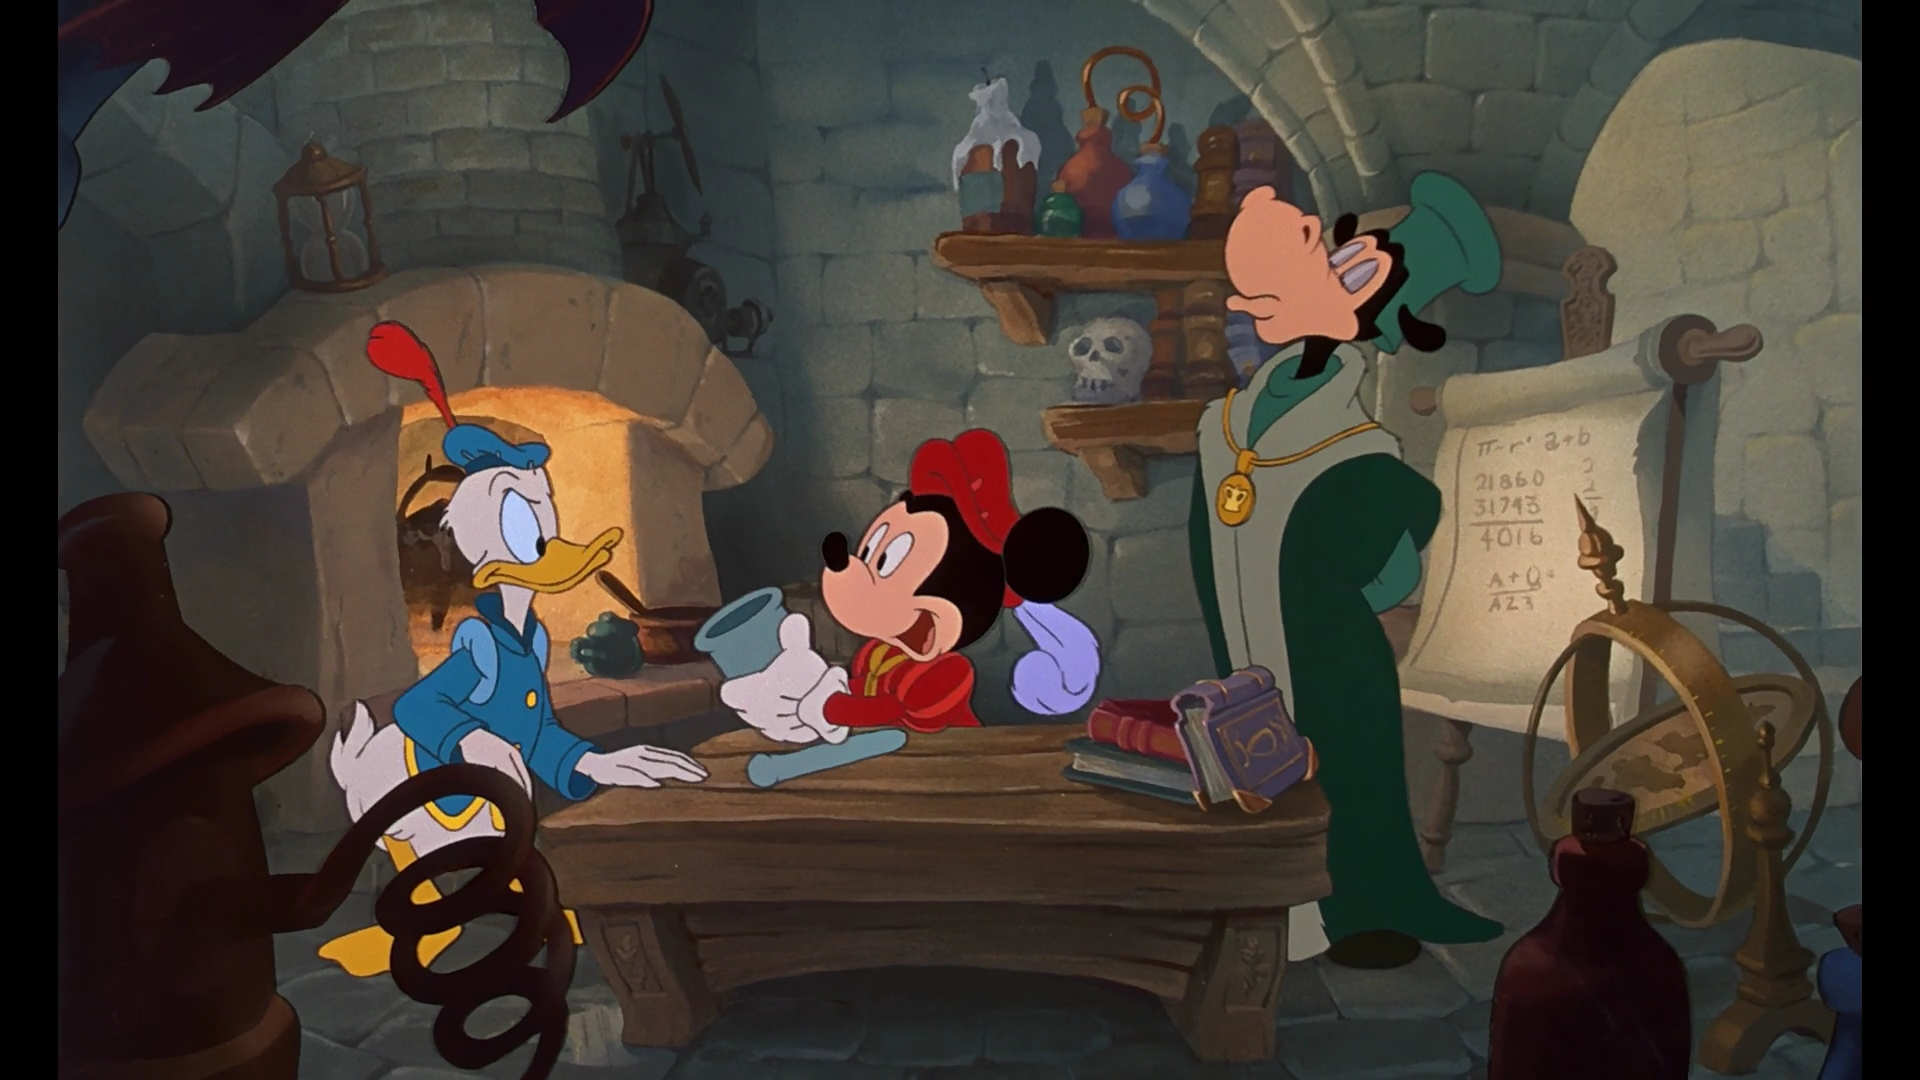 Микки Маус: Принц и нищий / Mickey Mouse: The Prince and the Pauper (1990/WEB-DL) 1080p